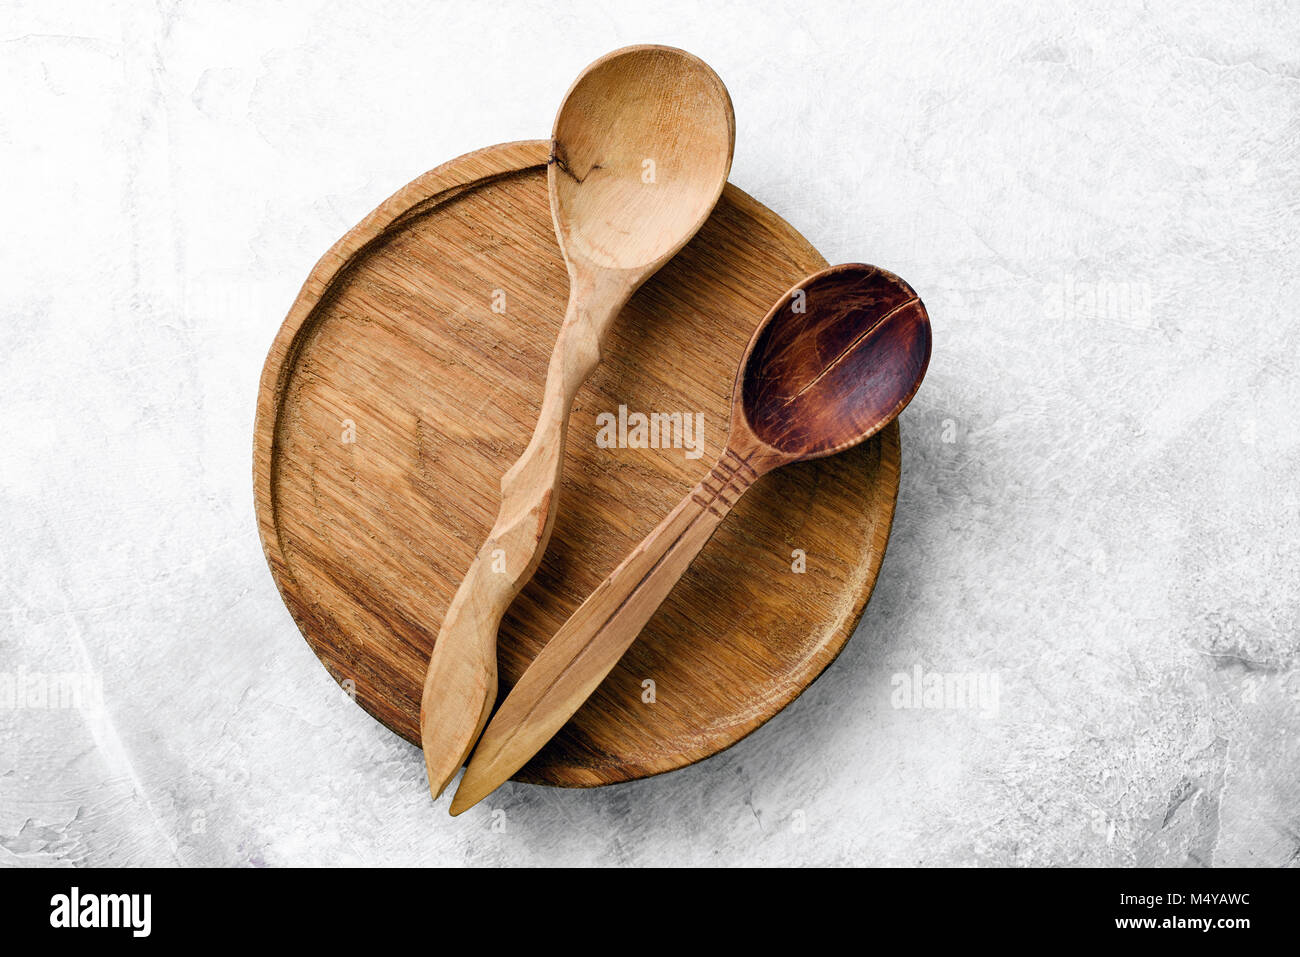 Wooden kitchen accessories or kitchen props on concrete background. Top view - Stock Image